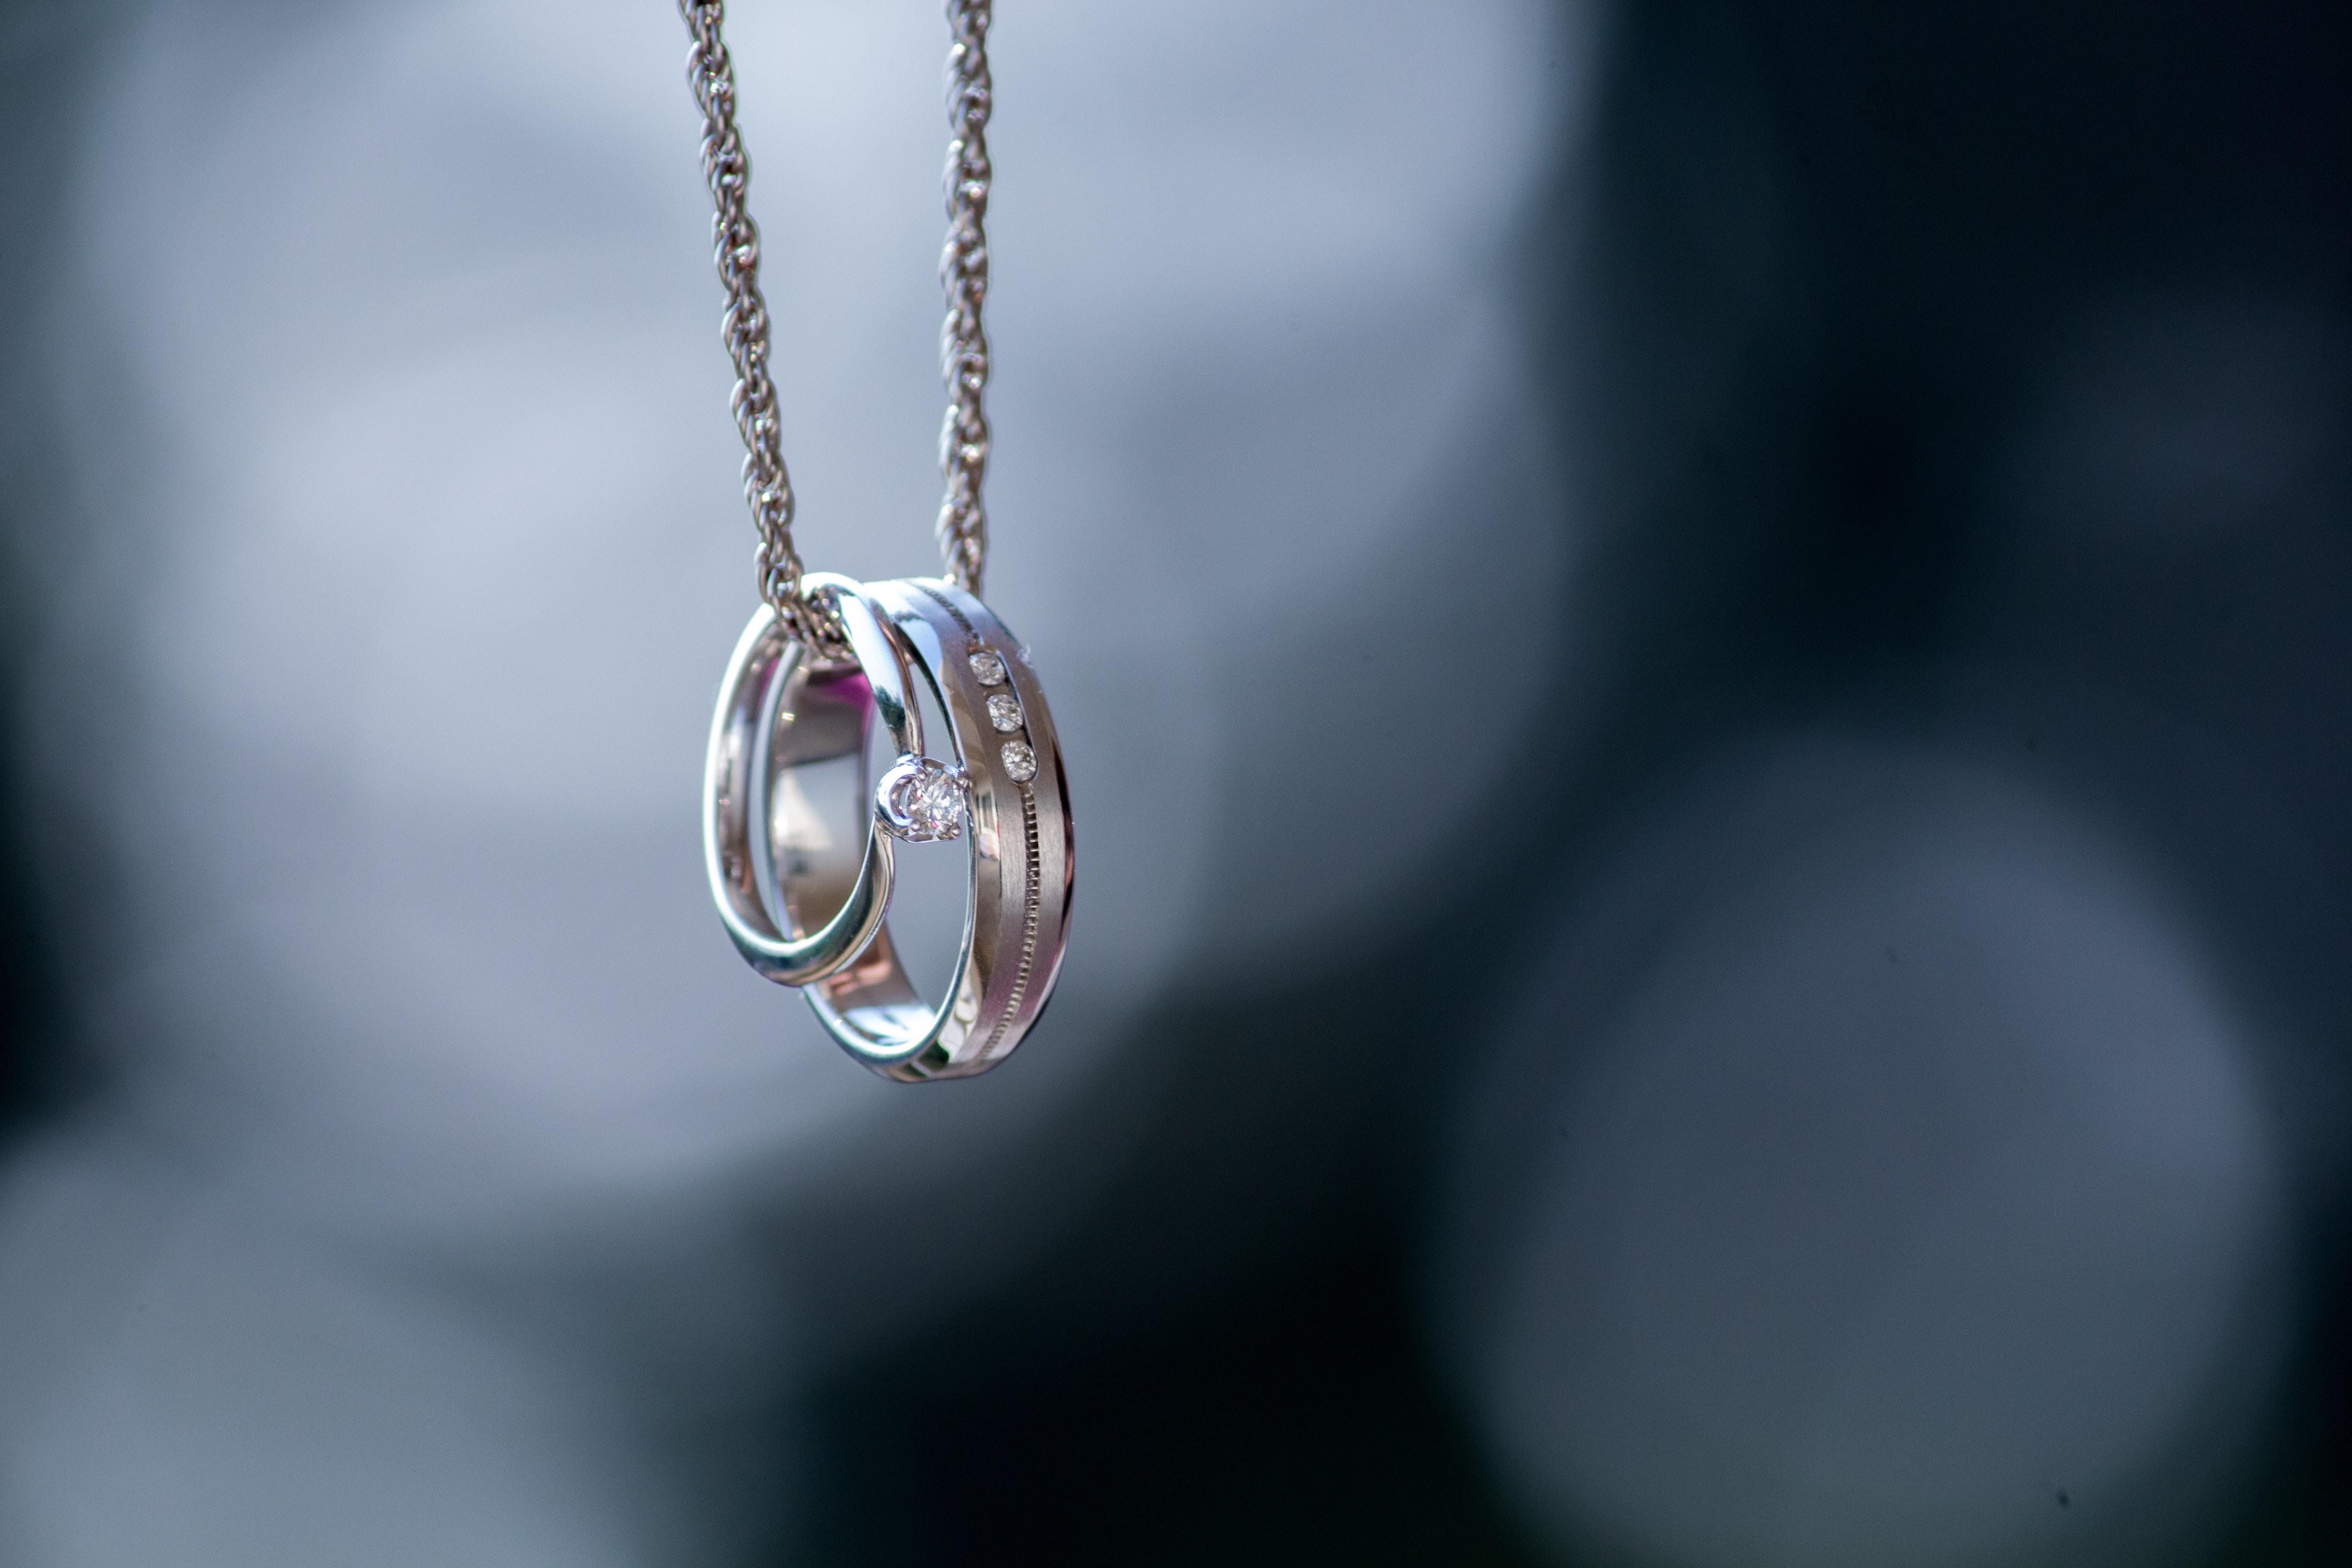 silver-colored ring pendant